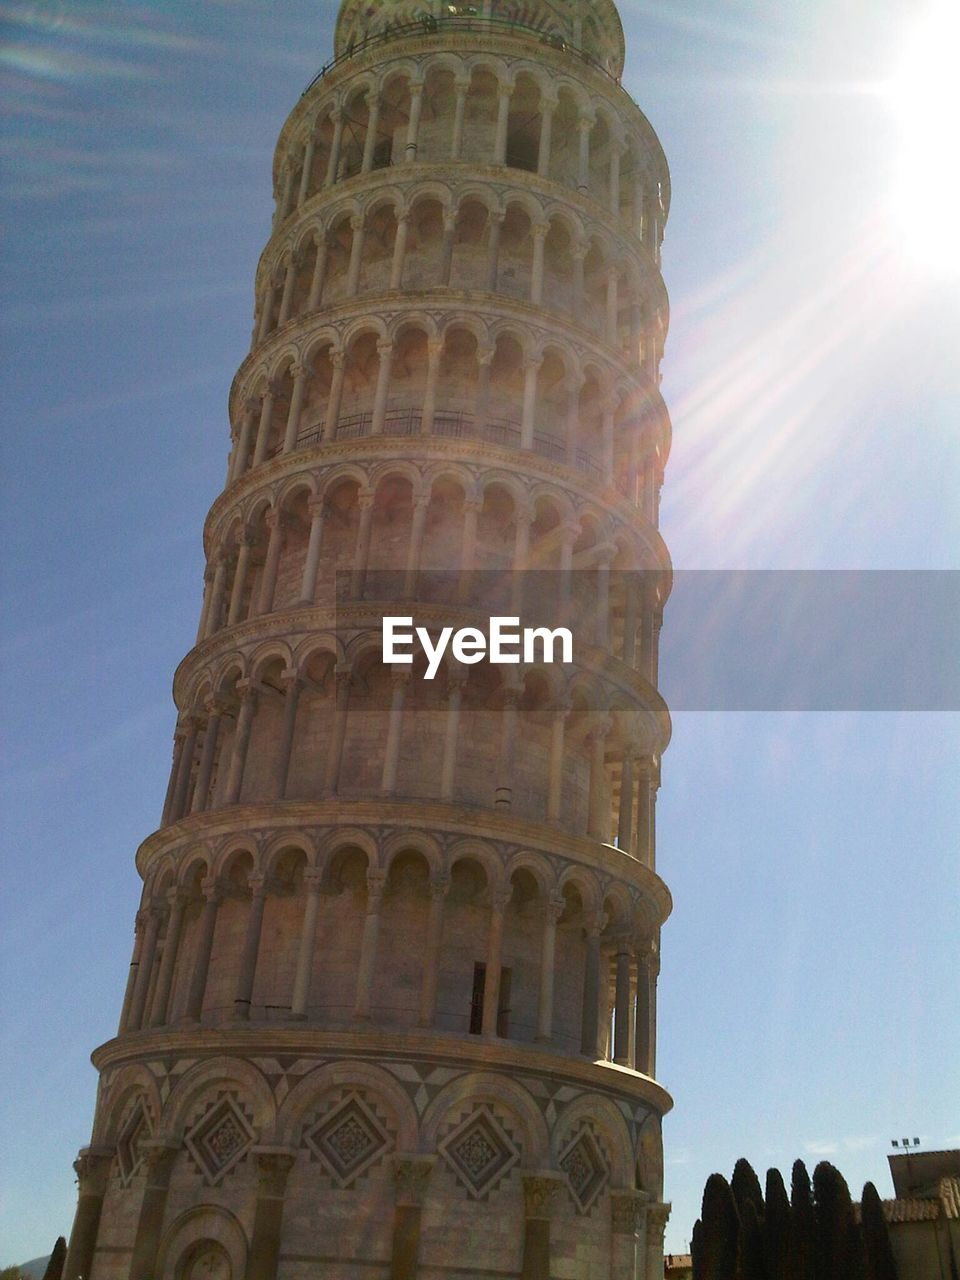 Low angle view of leaning tower of pisa against bright sky